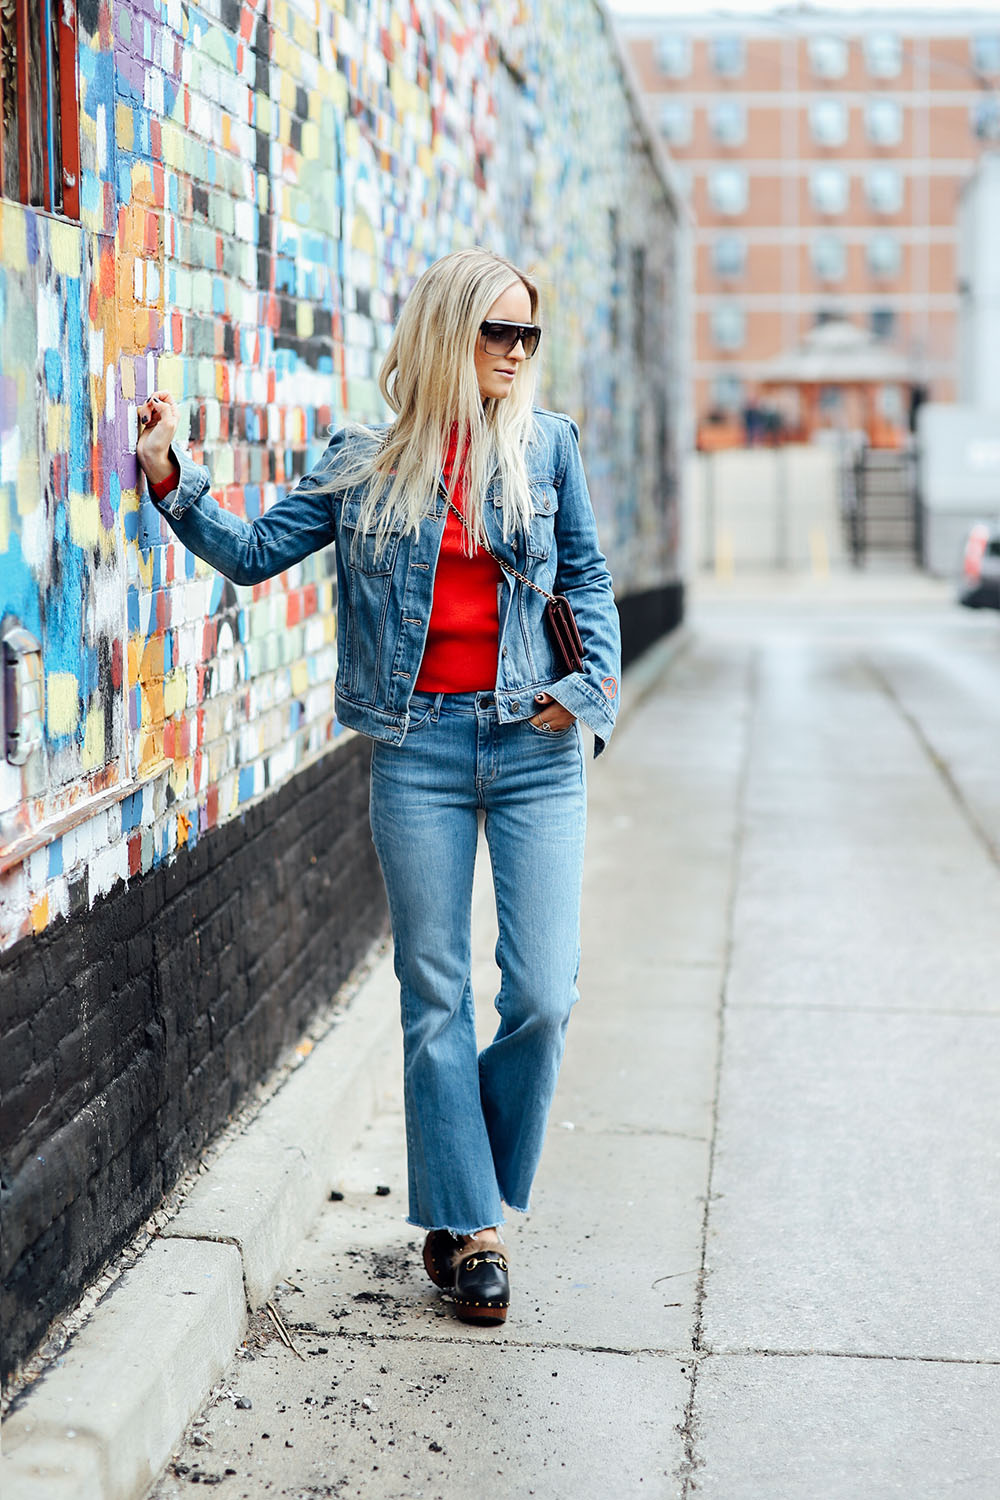 Gucci-clogs-and-jeans